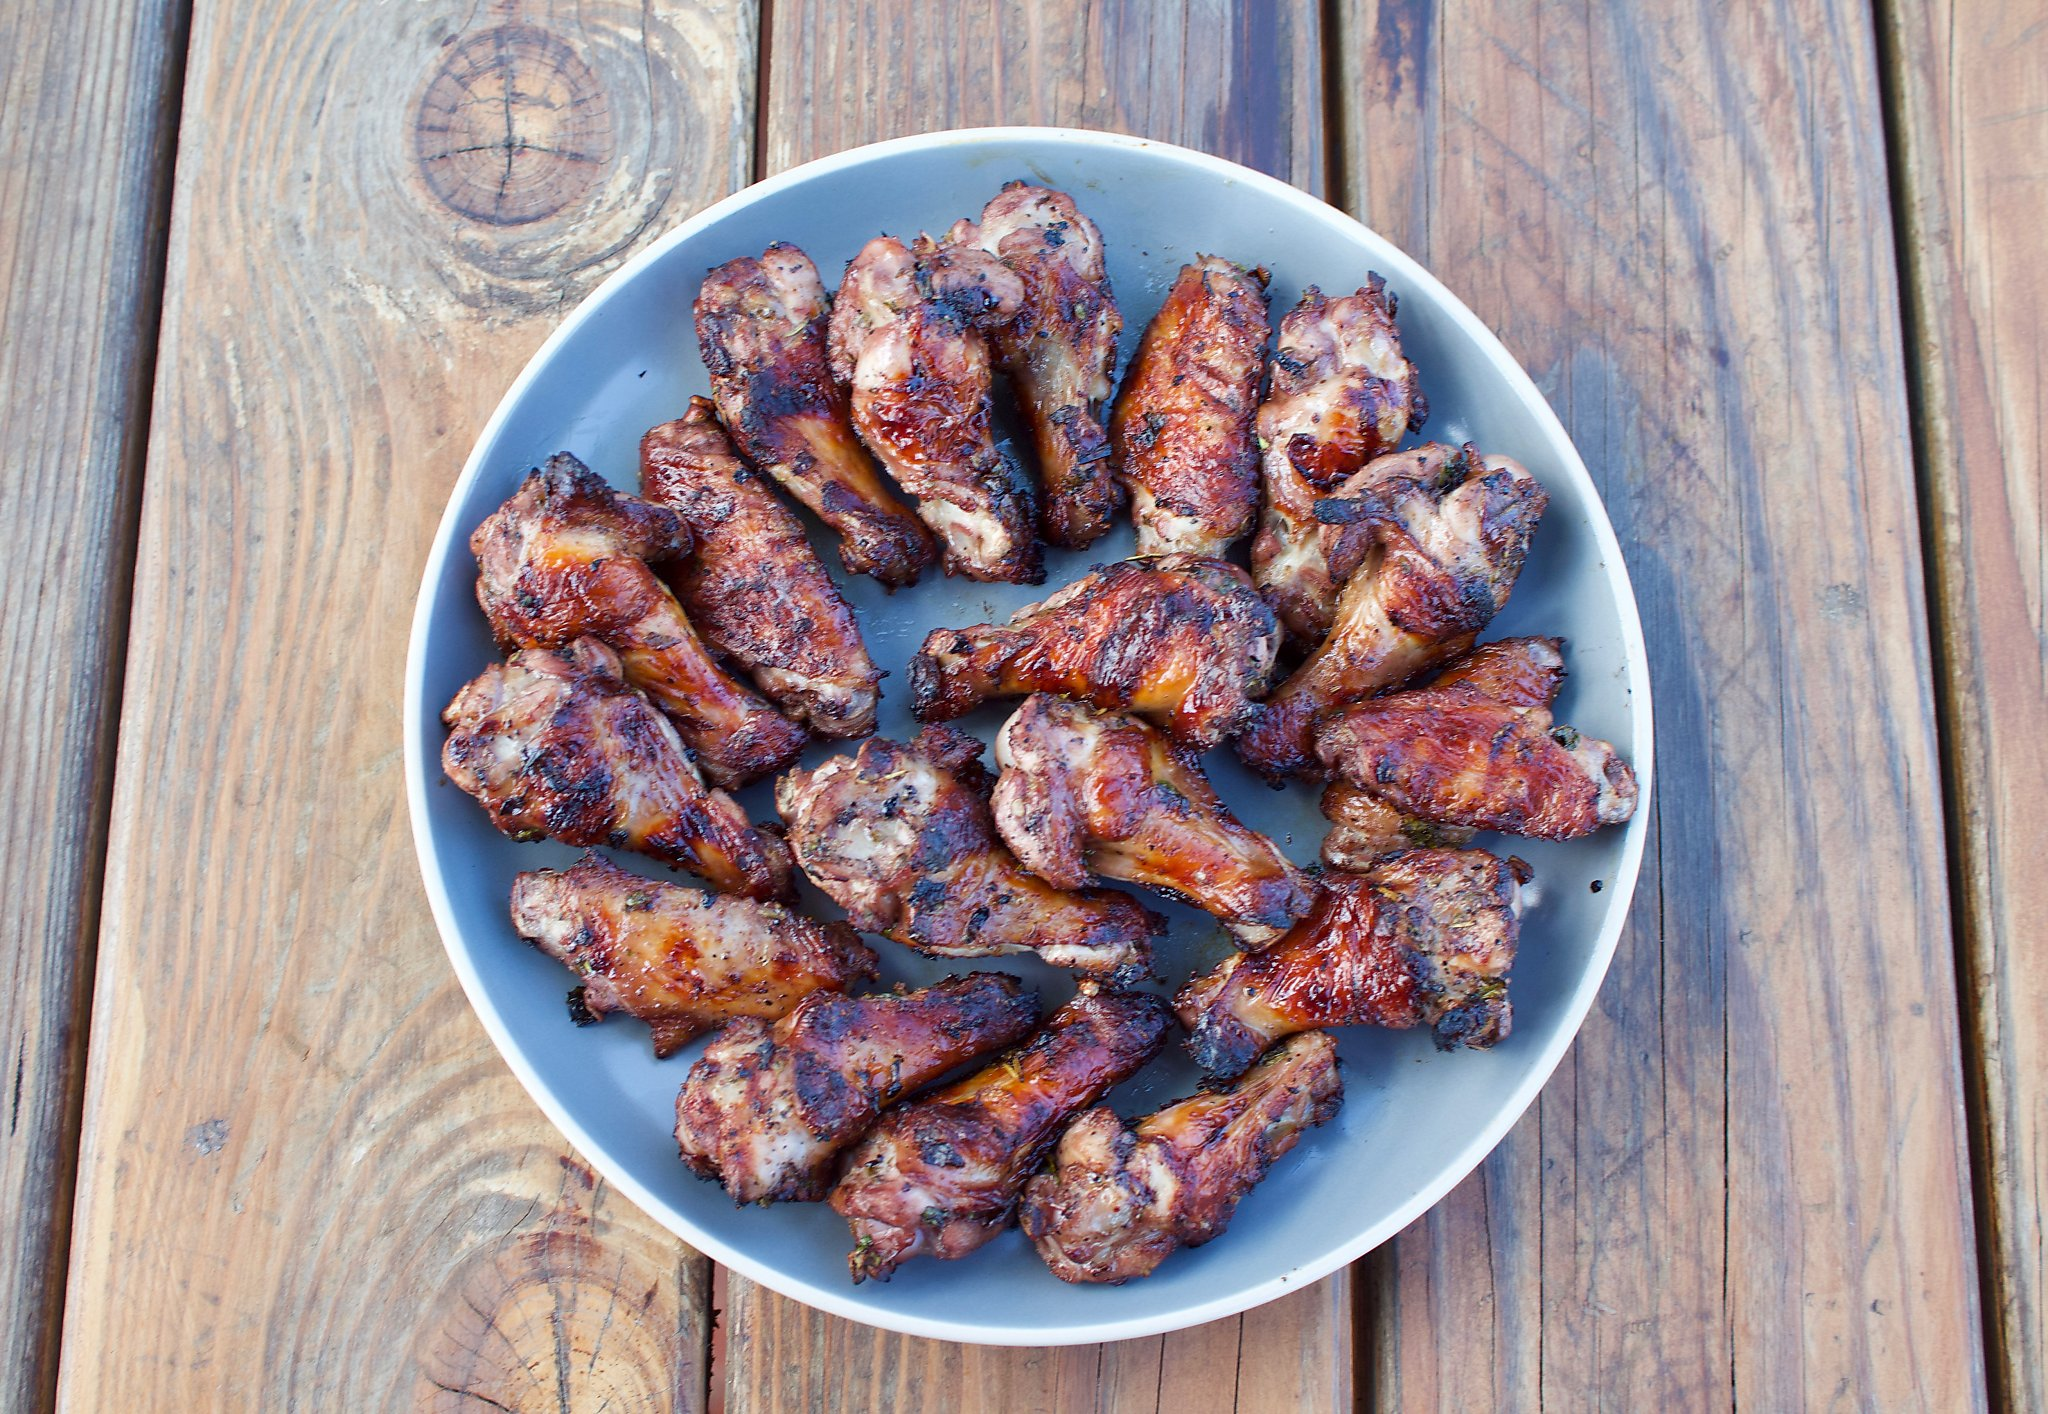 Grill these Brazilian-style wings for a zingy weekend treat